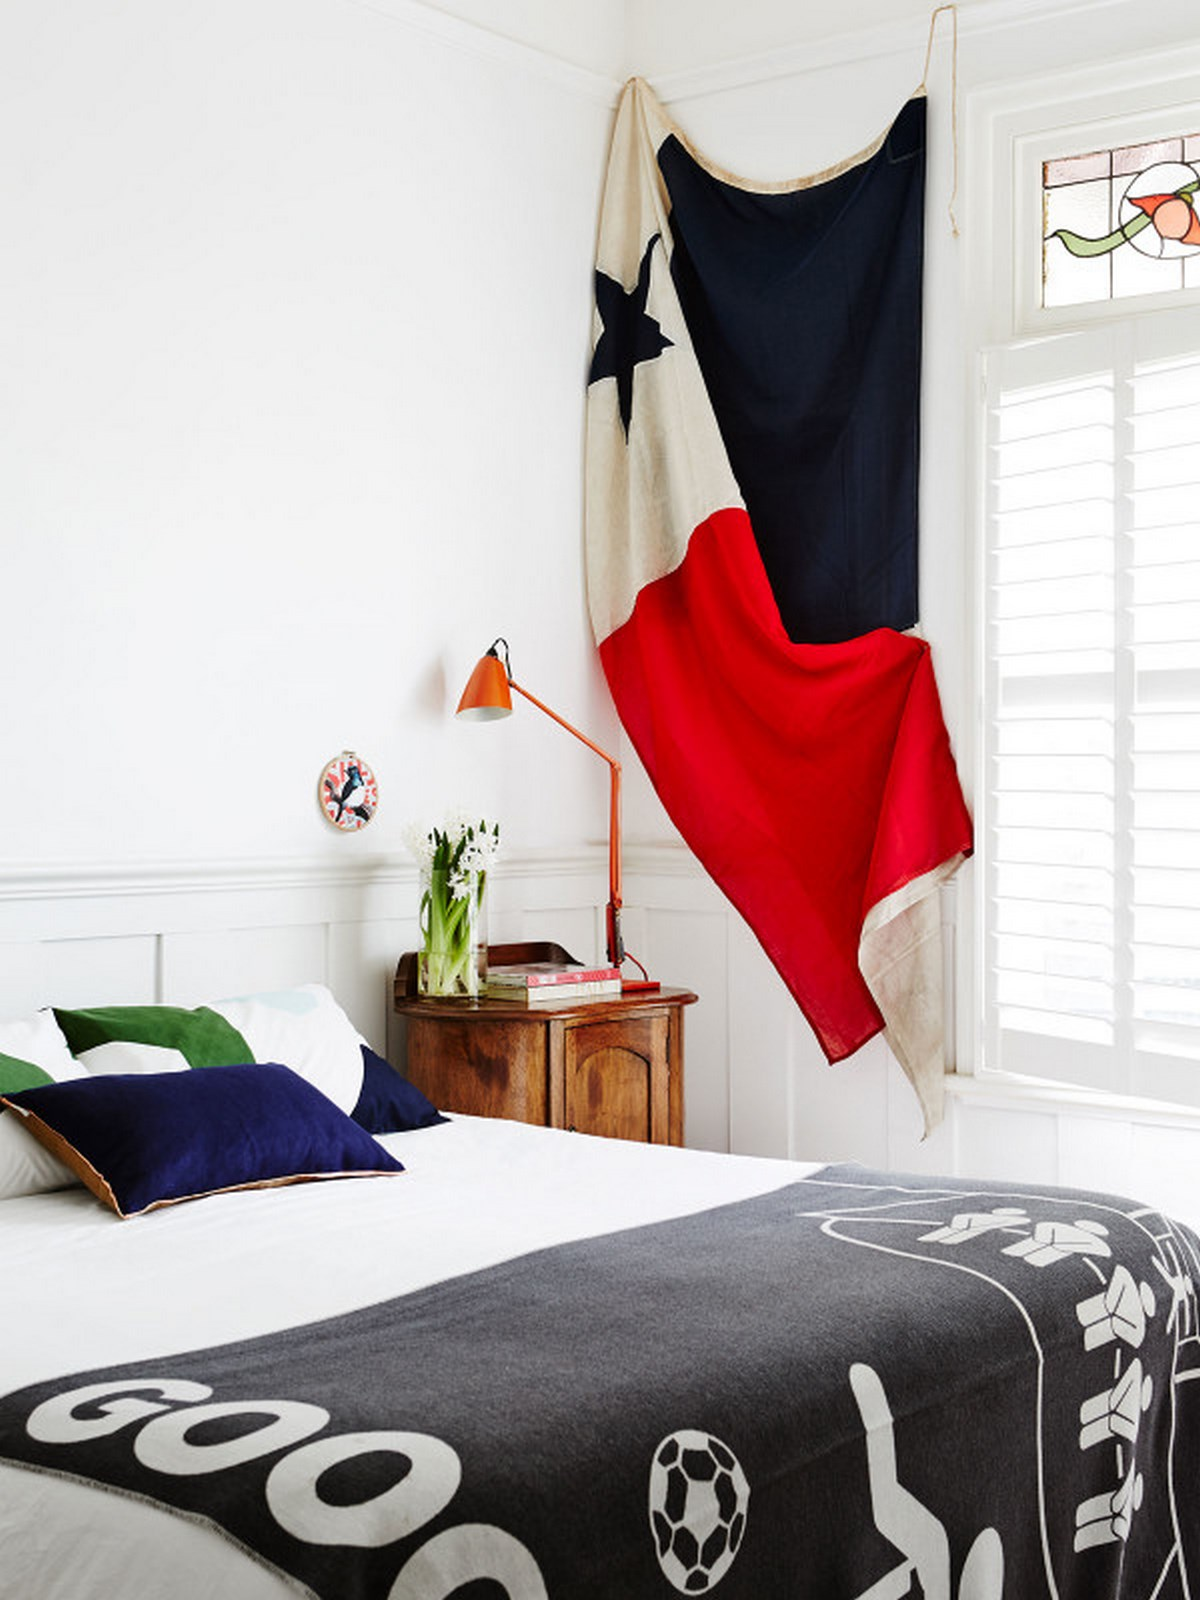 3-bedroom-ideas-with-white-bedcover-and-blue-pillow-wnad-white-painted-wall-cozy-home-design